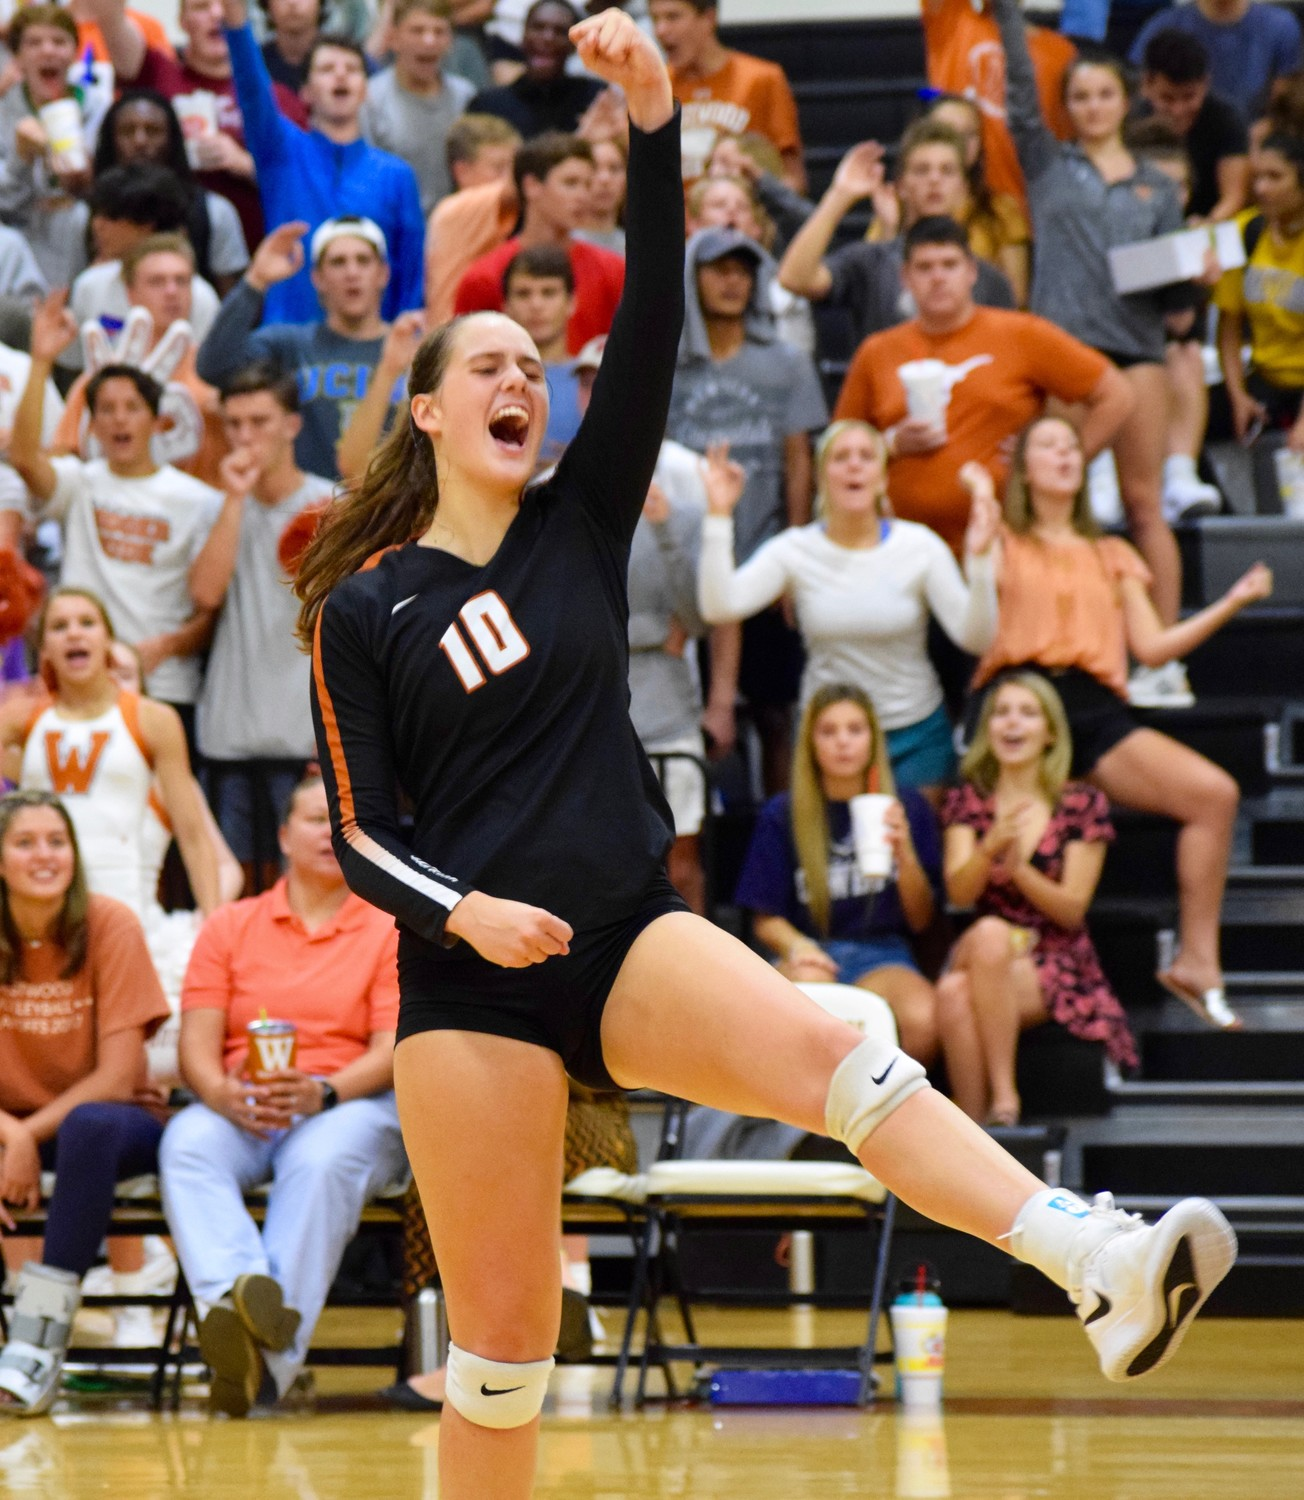 Audrey Quesnel and Westwood beat McNeil 3-1 (25-21, 25-17, 19-25, 28-26) on Tuesday night to remain one of two teams still undefeated in District 13-6A play.